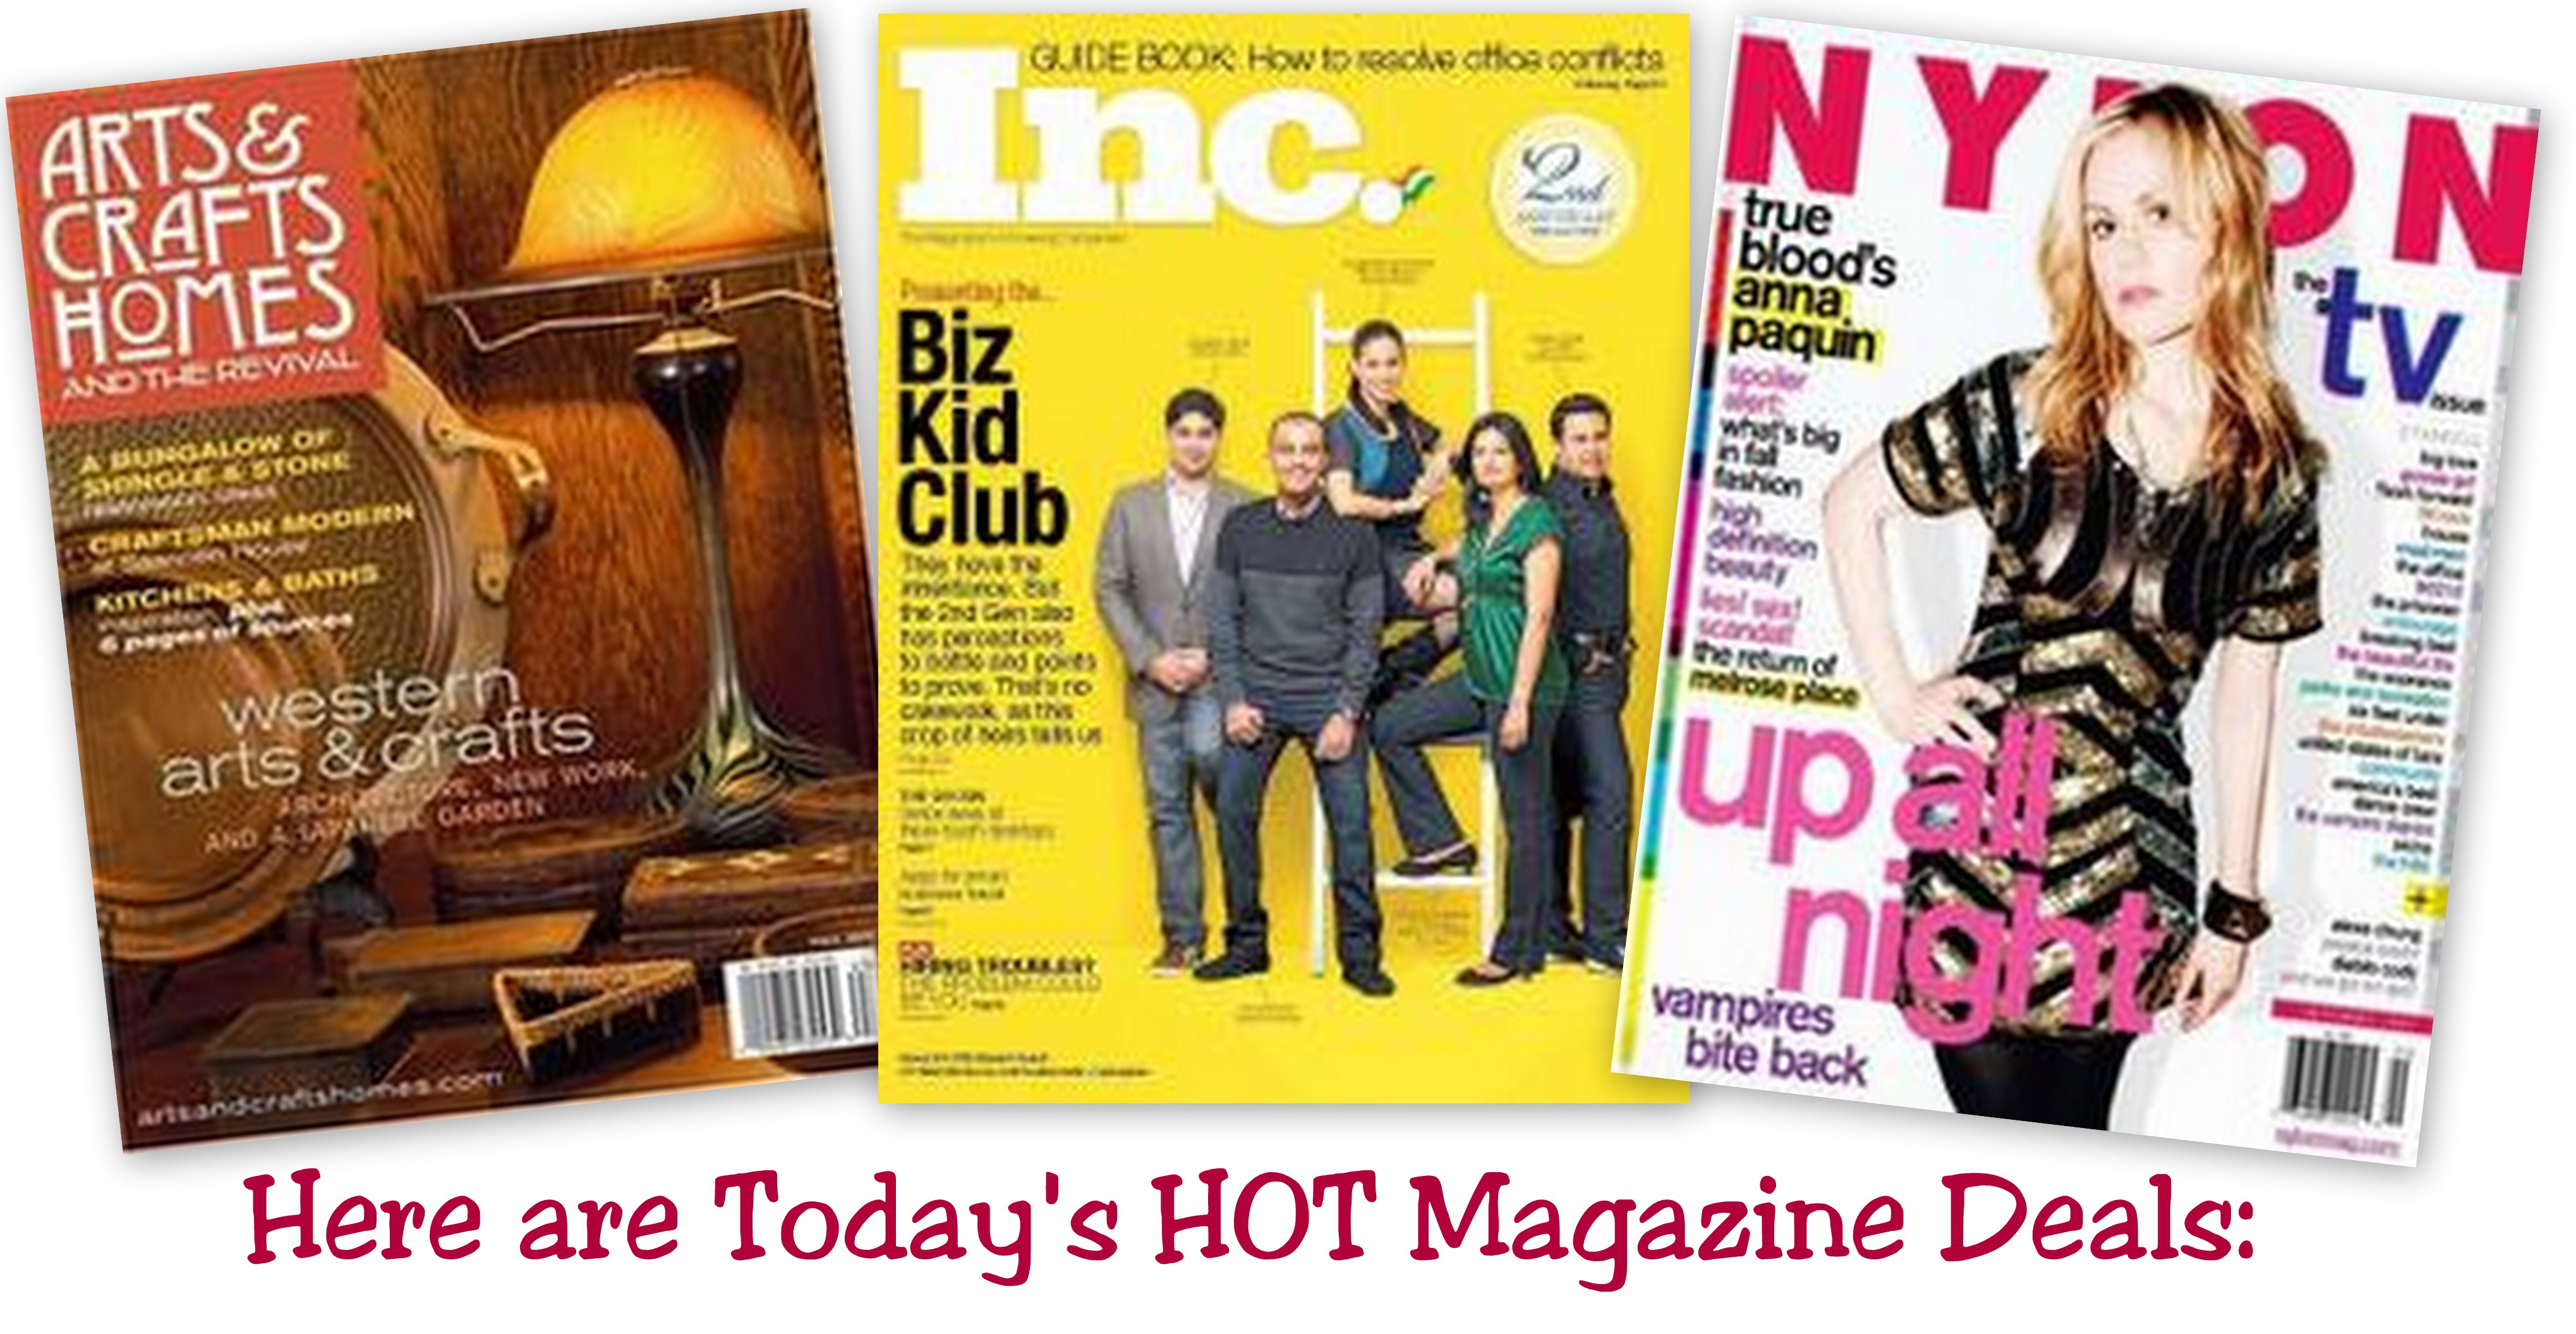 Daily Magazine Deals Arts Crafts Homes Inc And Nylon